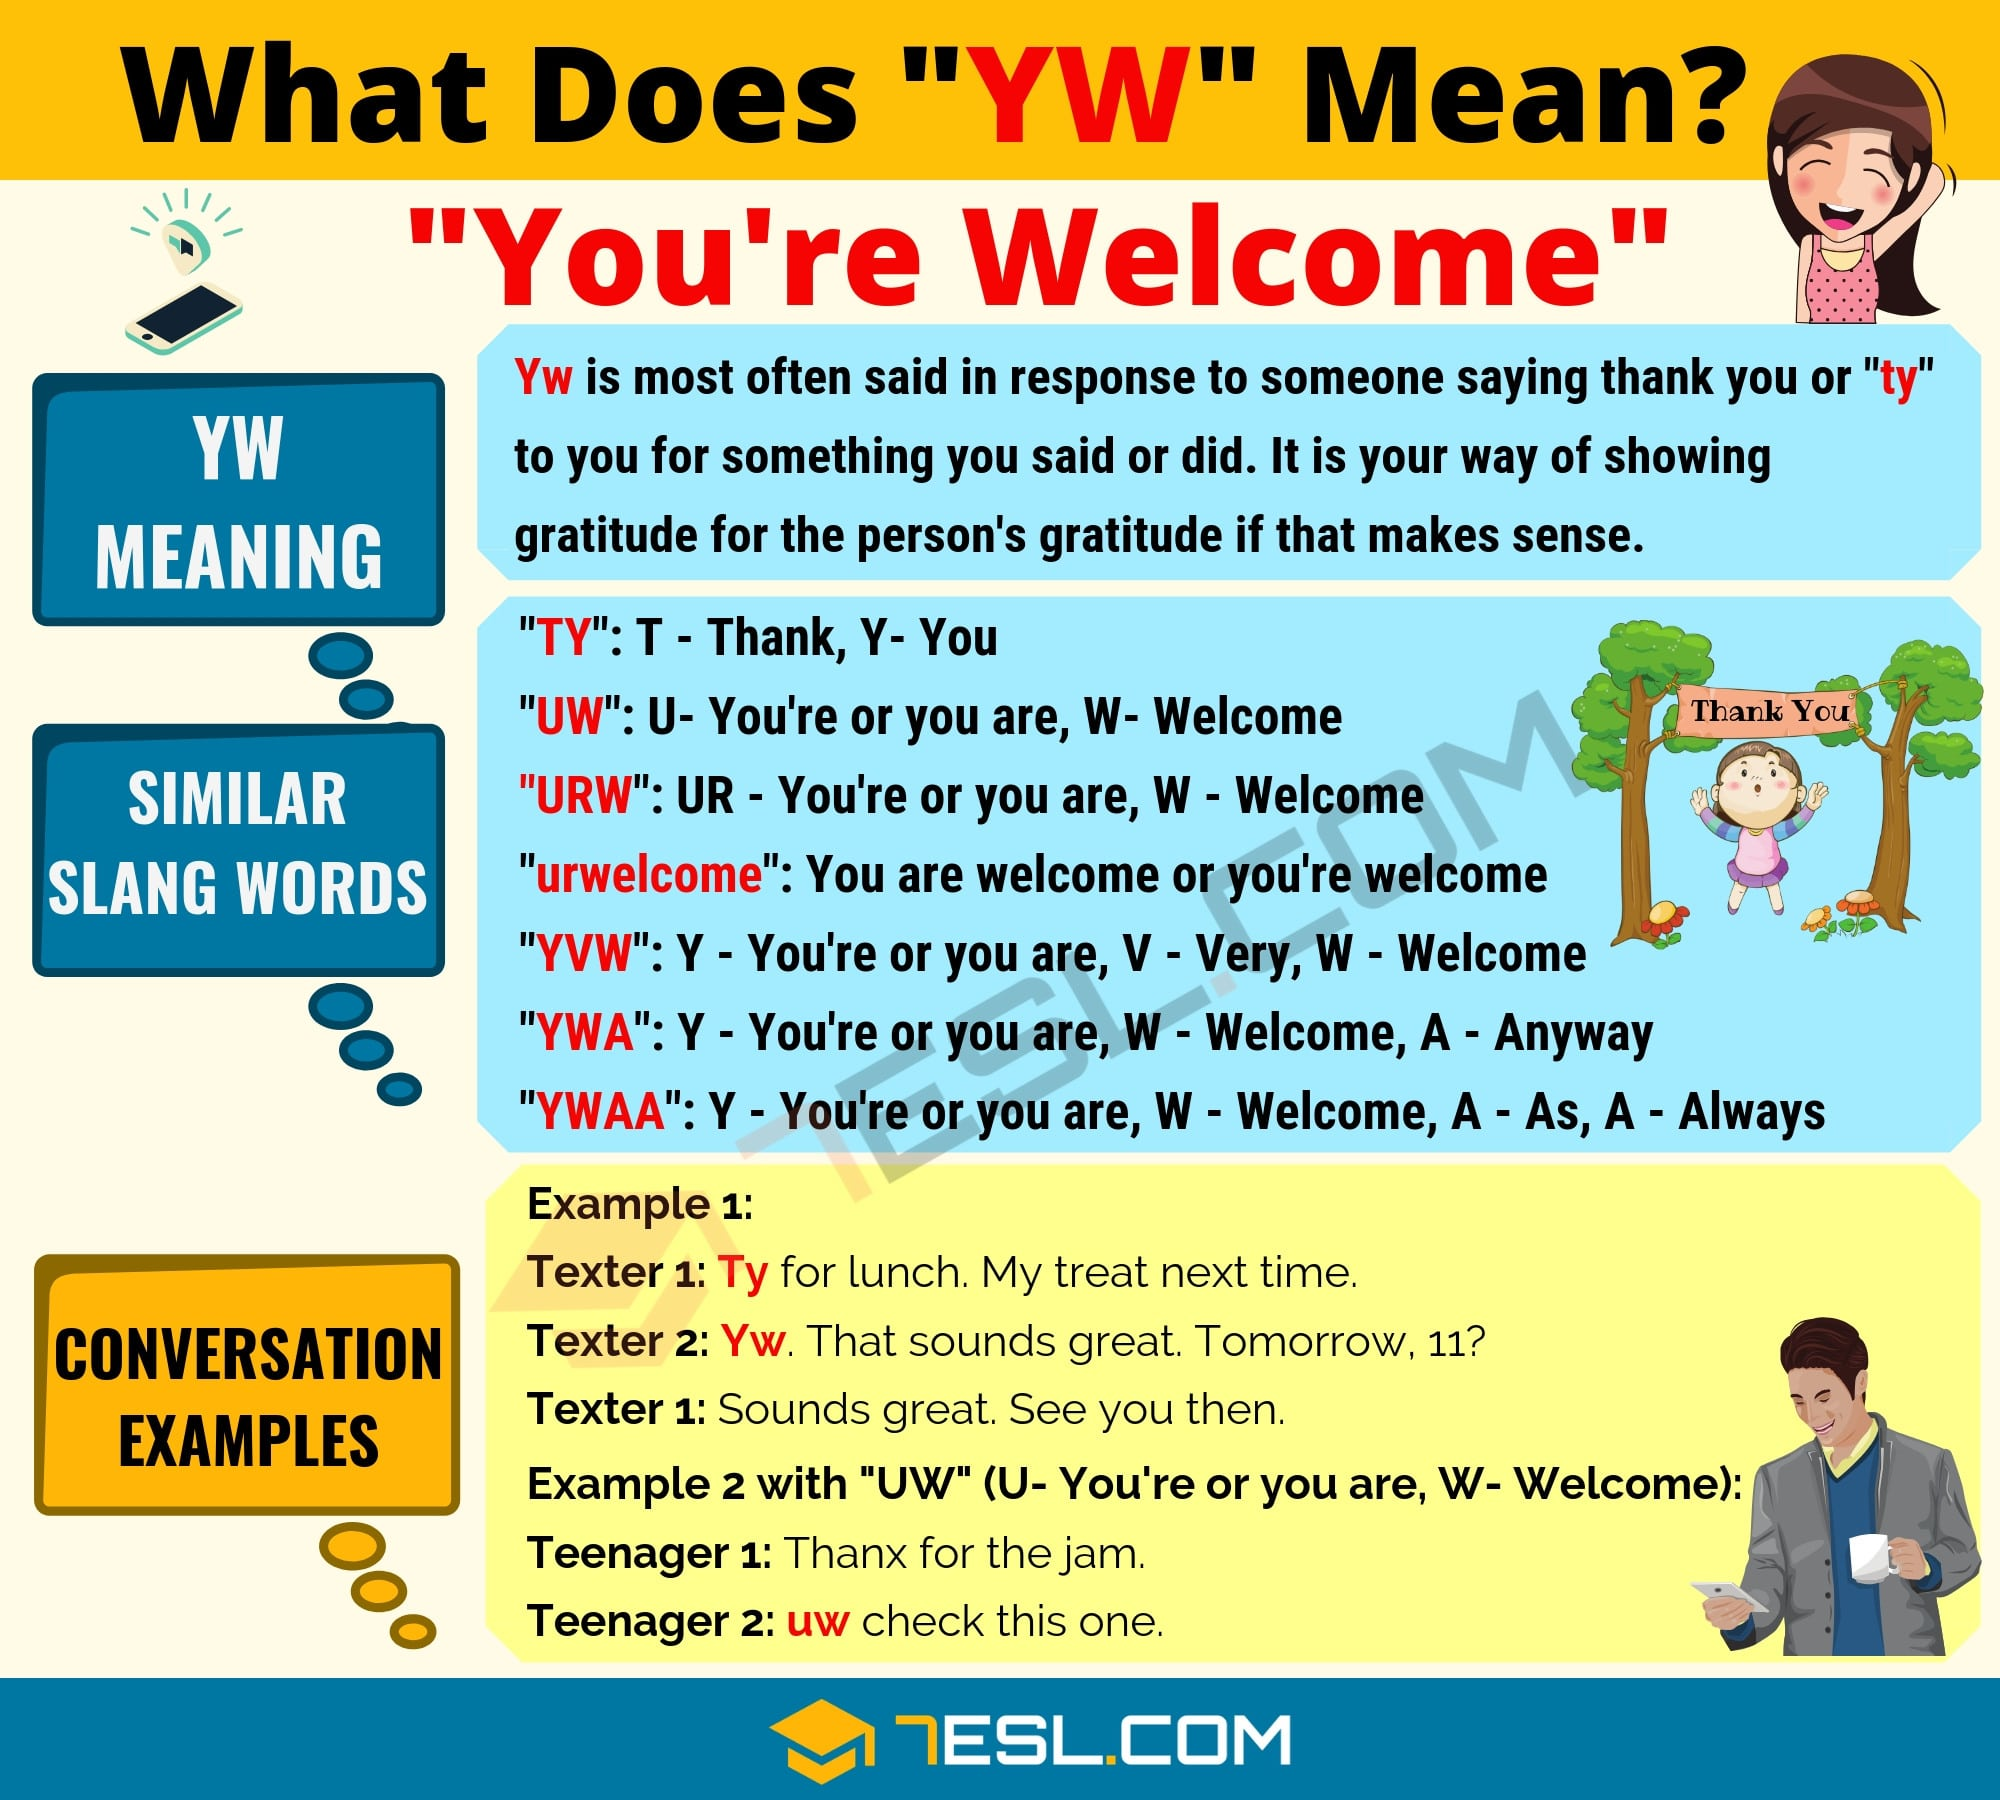 Yw Meaning What Does Yw Mean Useful Text Conversations 7esl